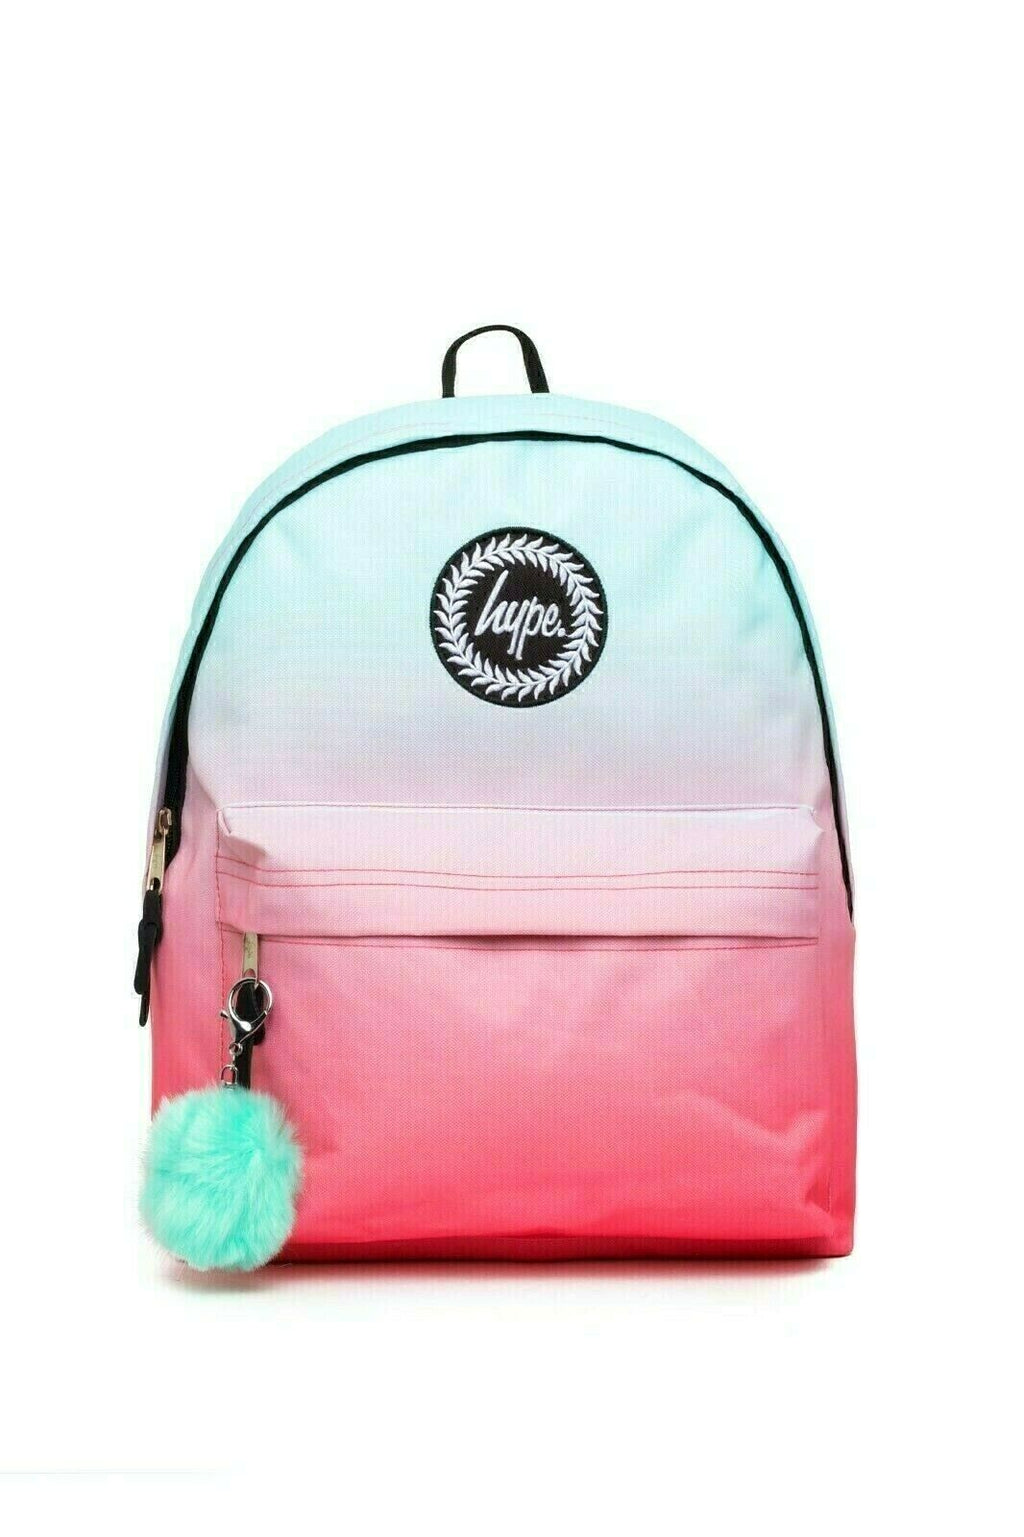 HYPE BUBBLEGUM FIZZ MINI BACKPACK RUCKSACK BAG - MULTI